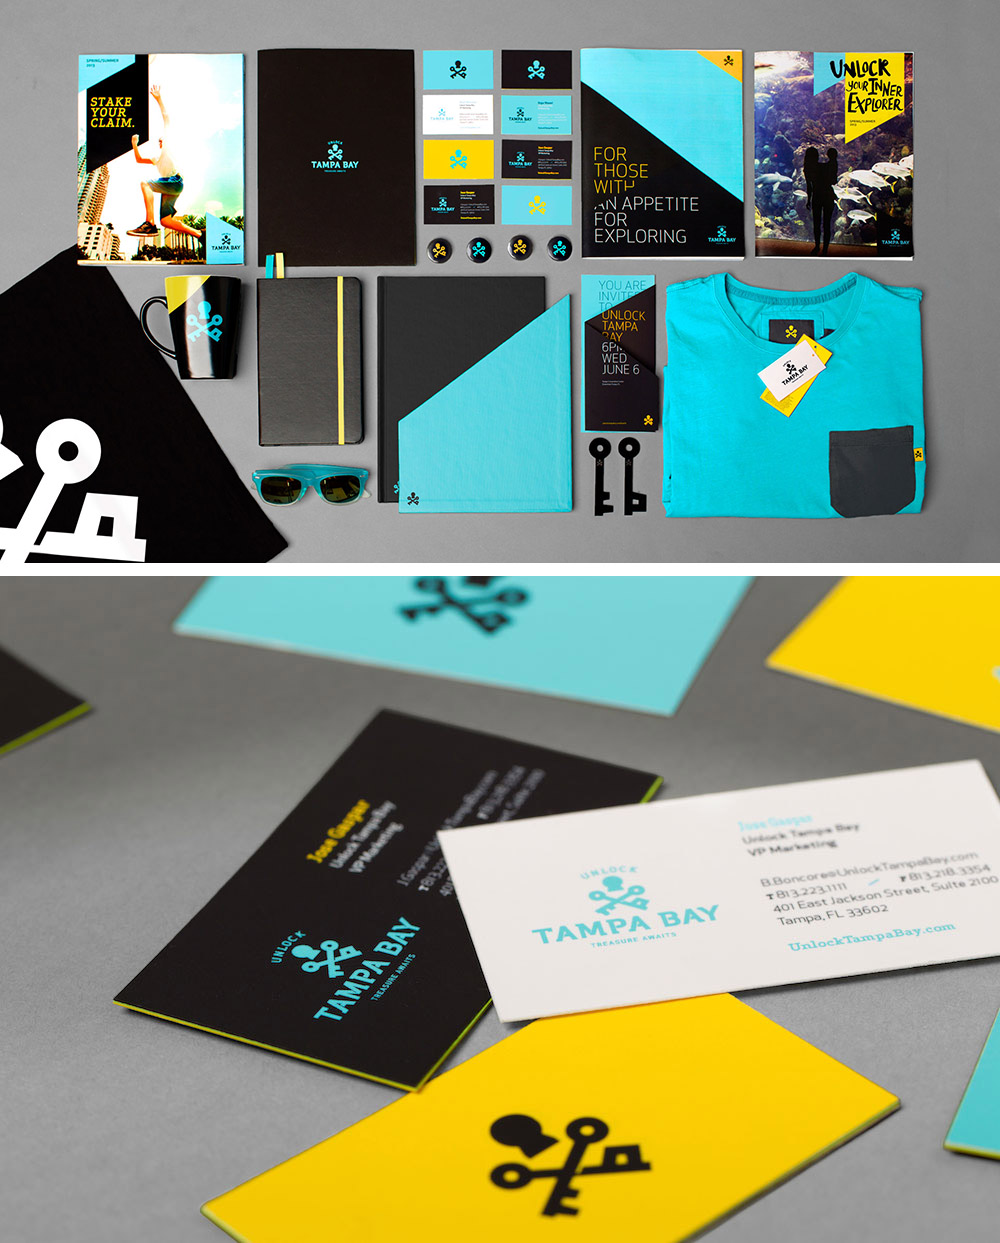 Unlock Tampa Bay Branding Campaign by SPARK